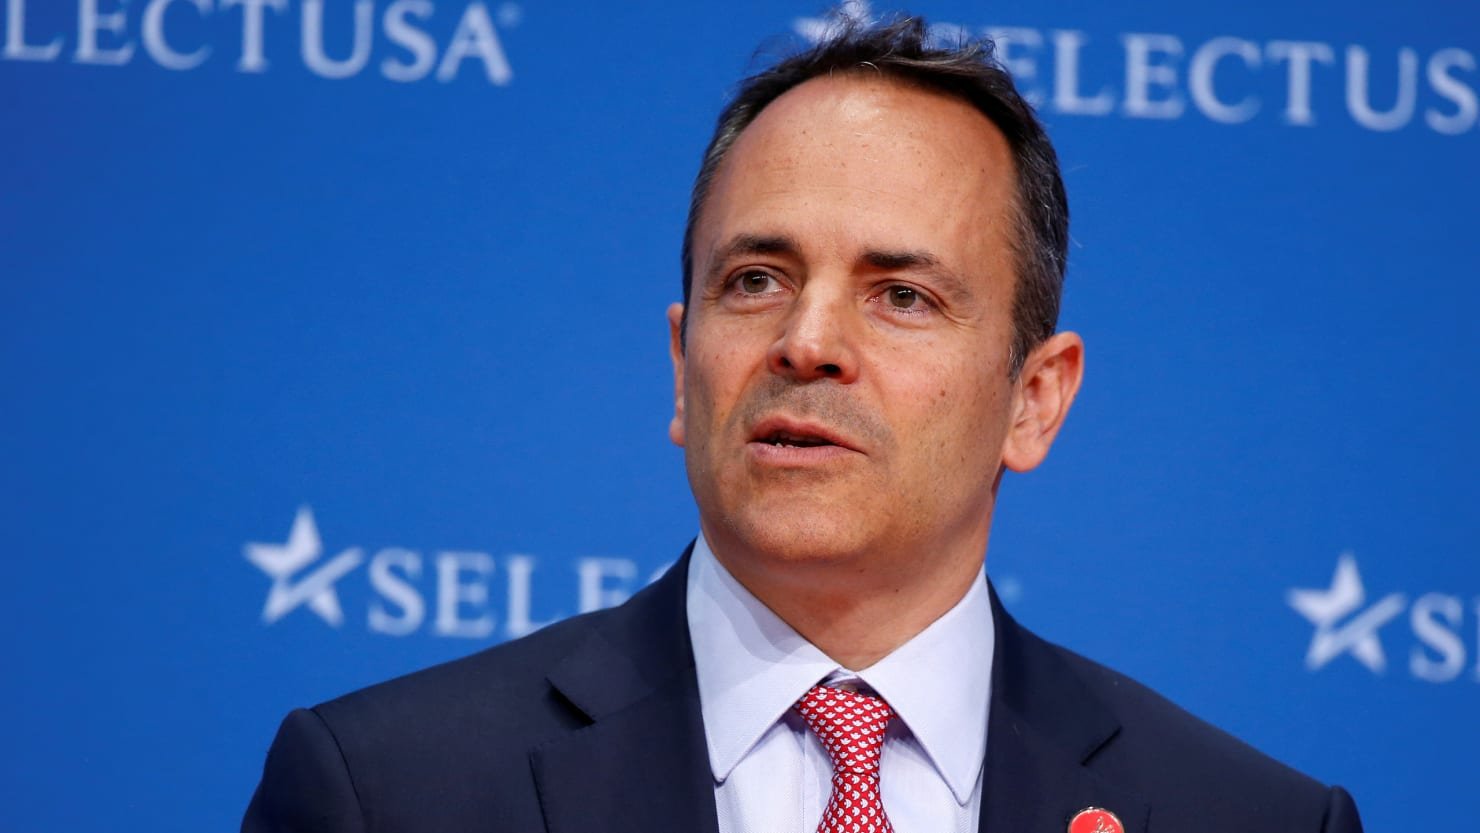 Kentucky Governor Matt Bevin Intentionally Exposed His Children to Chicken Pox Instead of Vaccinating Them